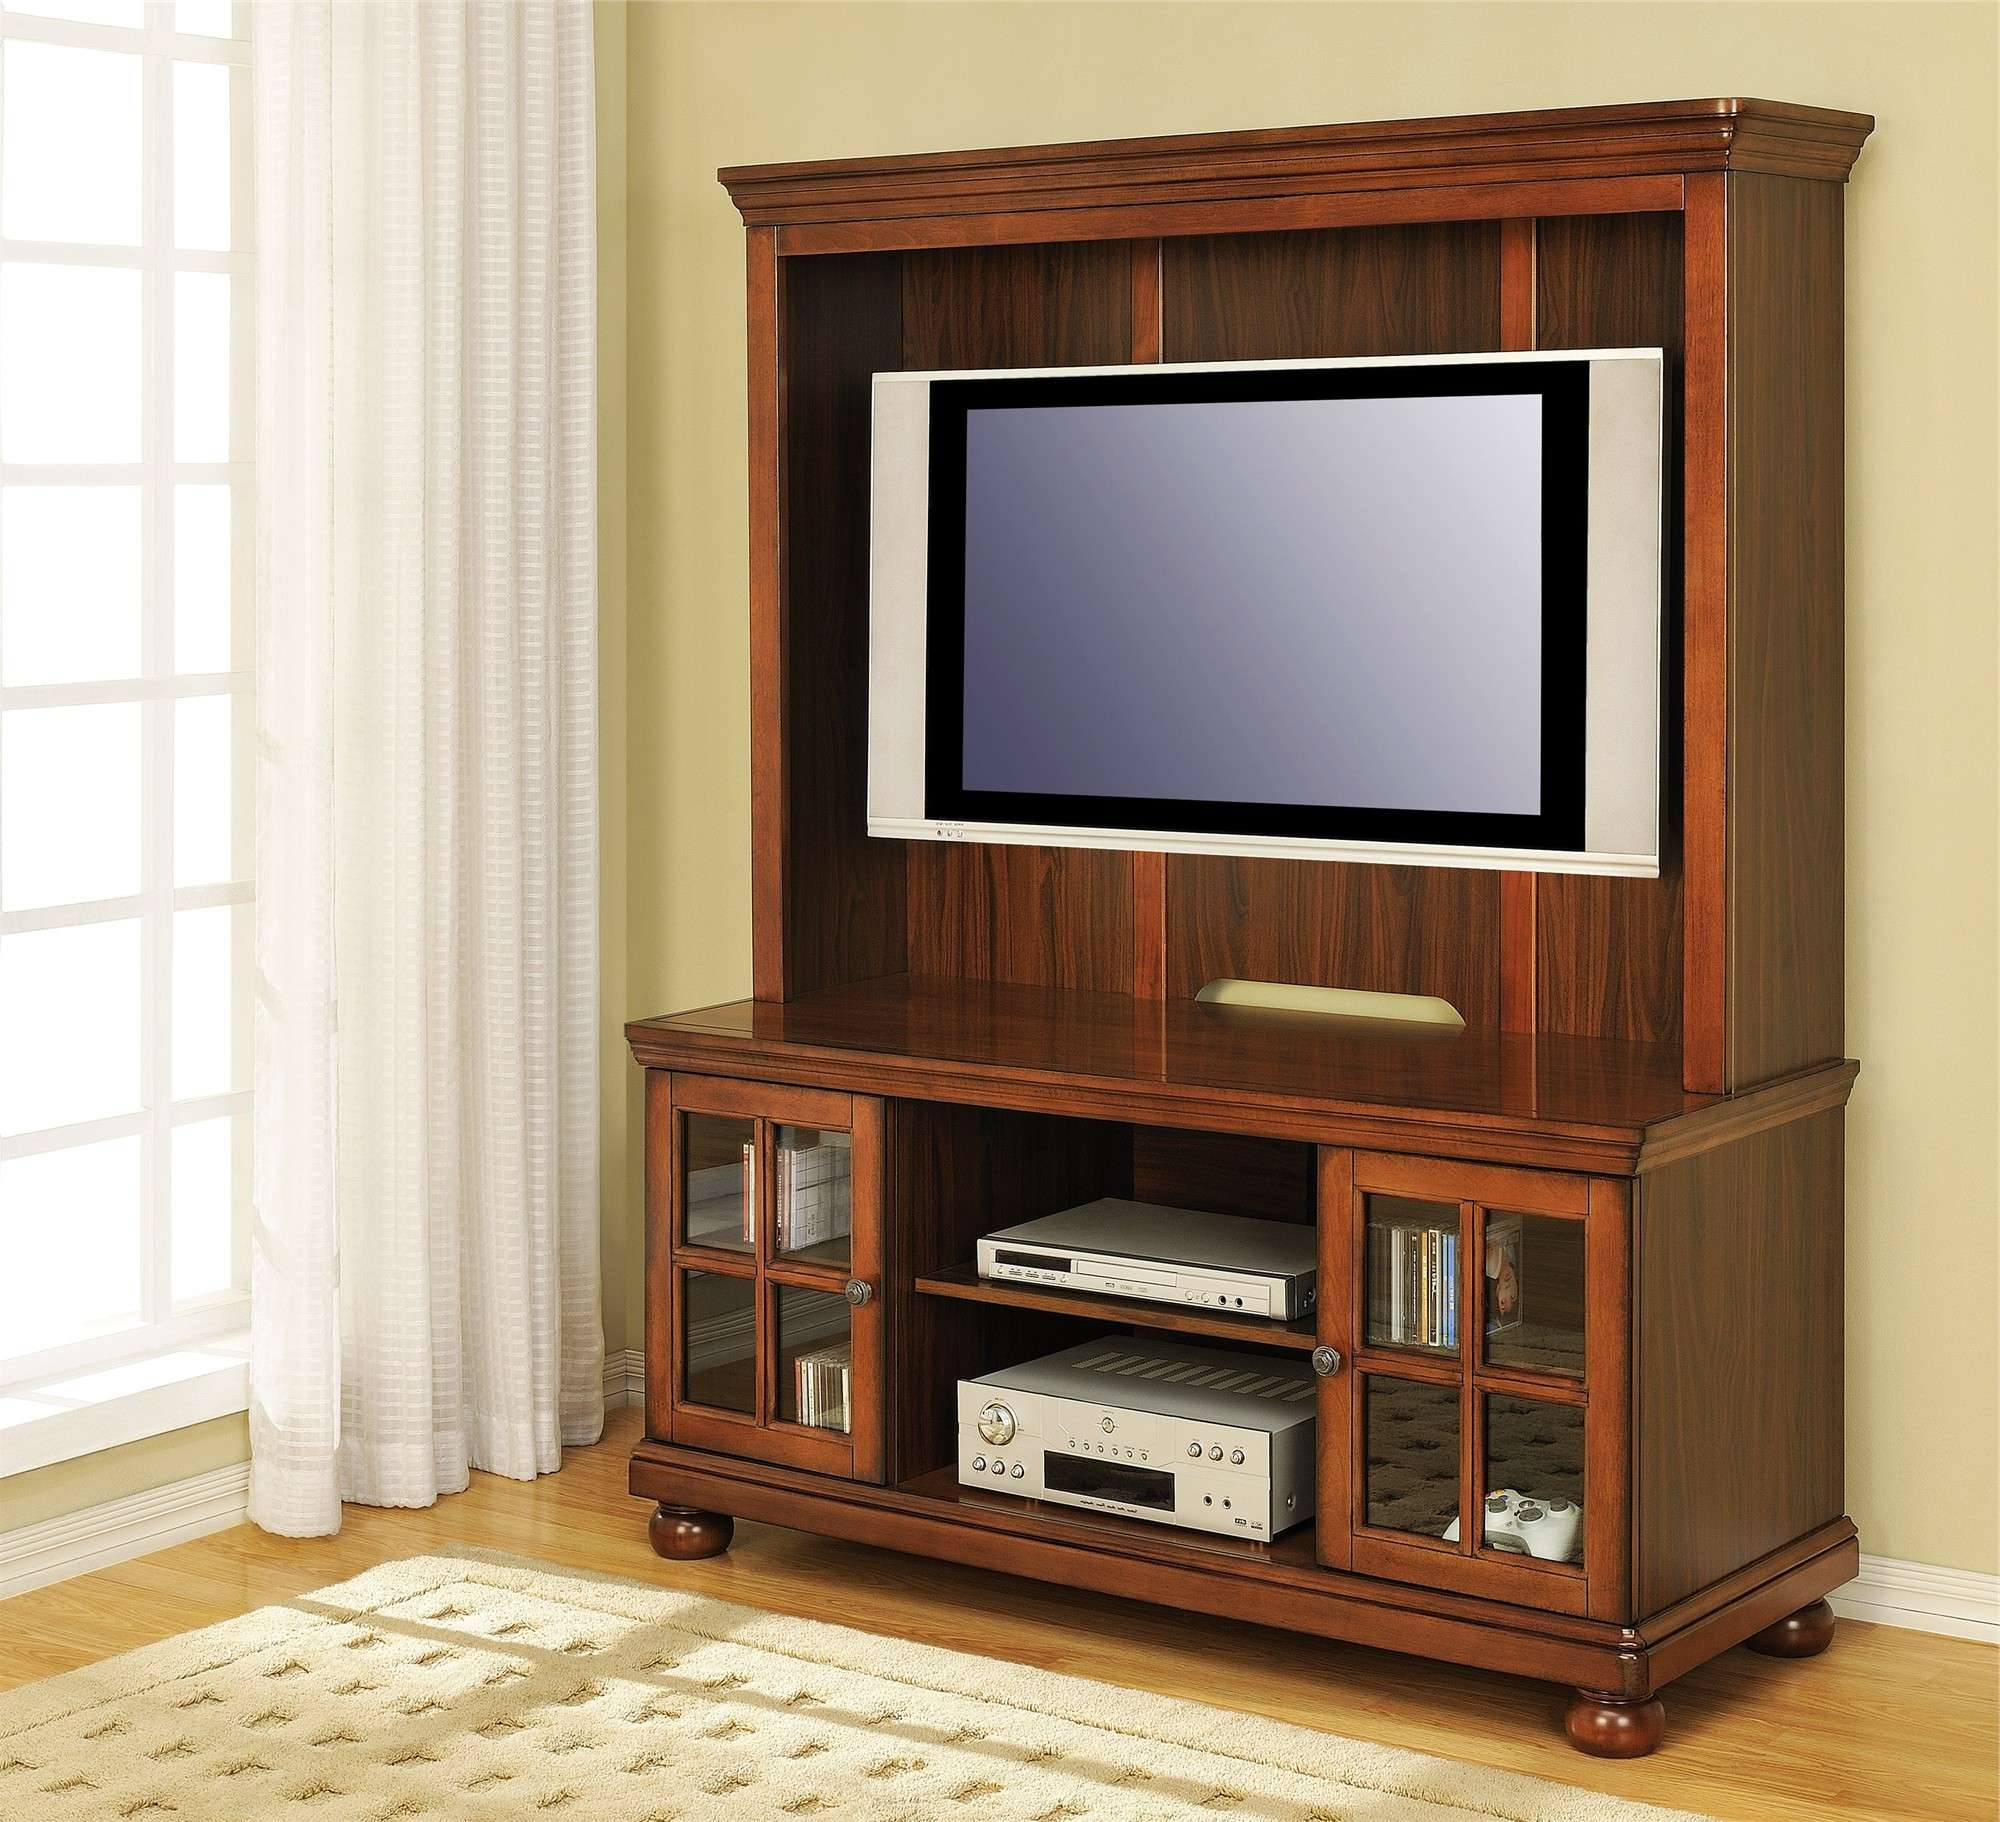 Brown Wooden Cabinet With Glass Door And Rectangle White Flat Pertaining To Glass Tv Cabinets With Doors (View 3 of 20)